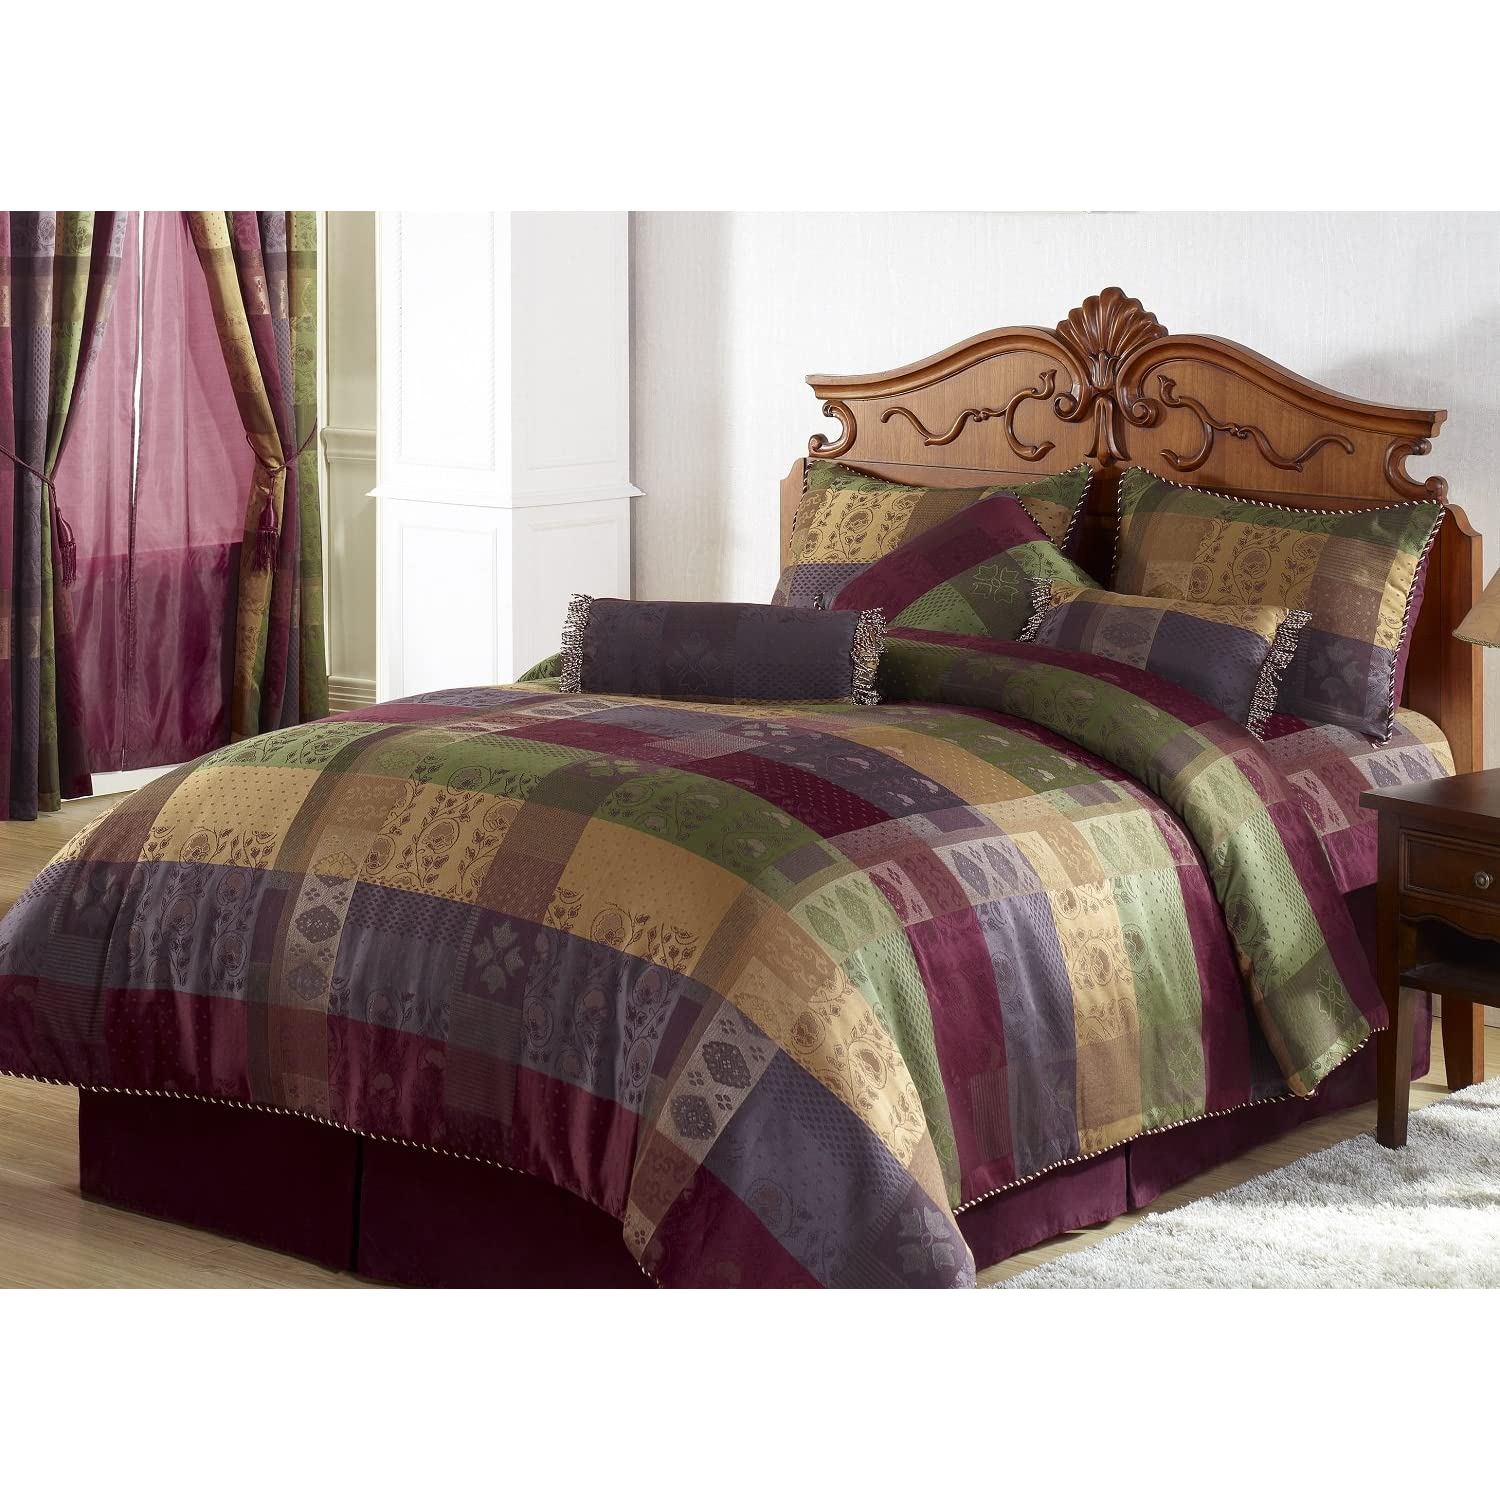 Buy Burgundy and Gold from Bed Bath Beyond